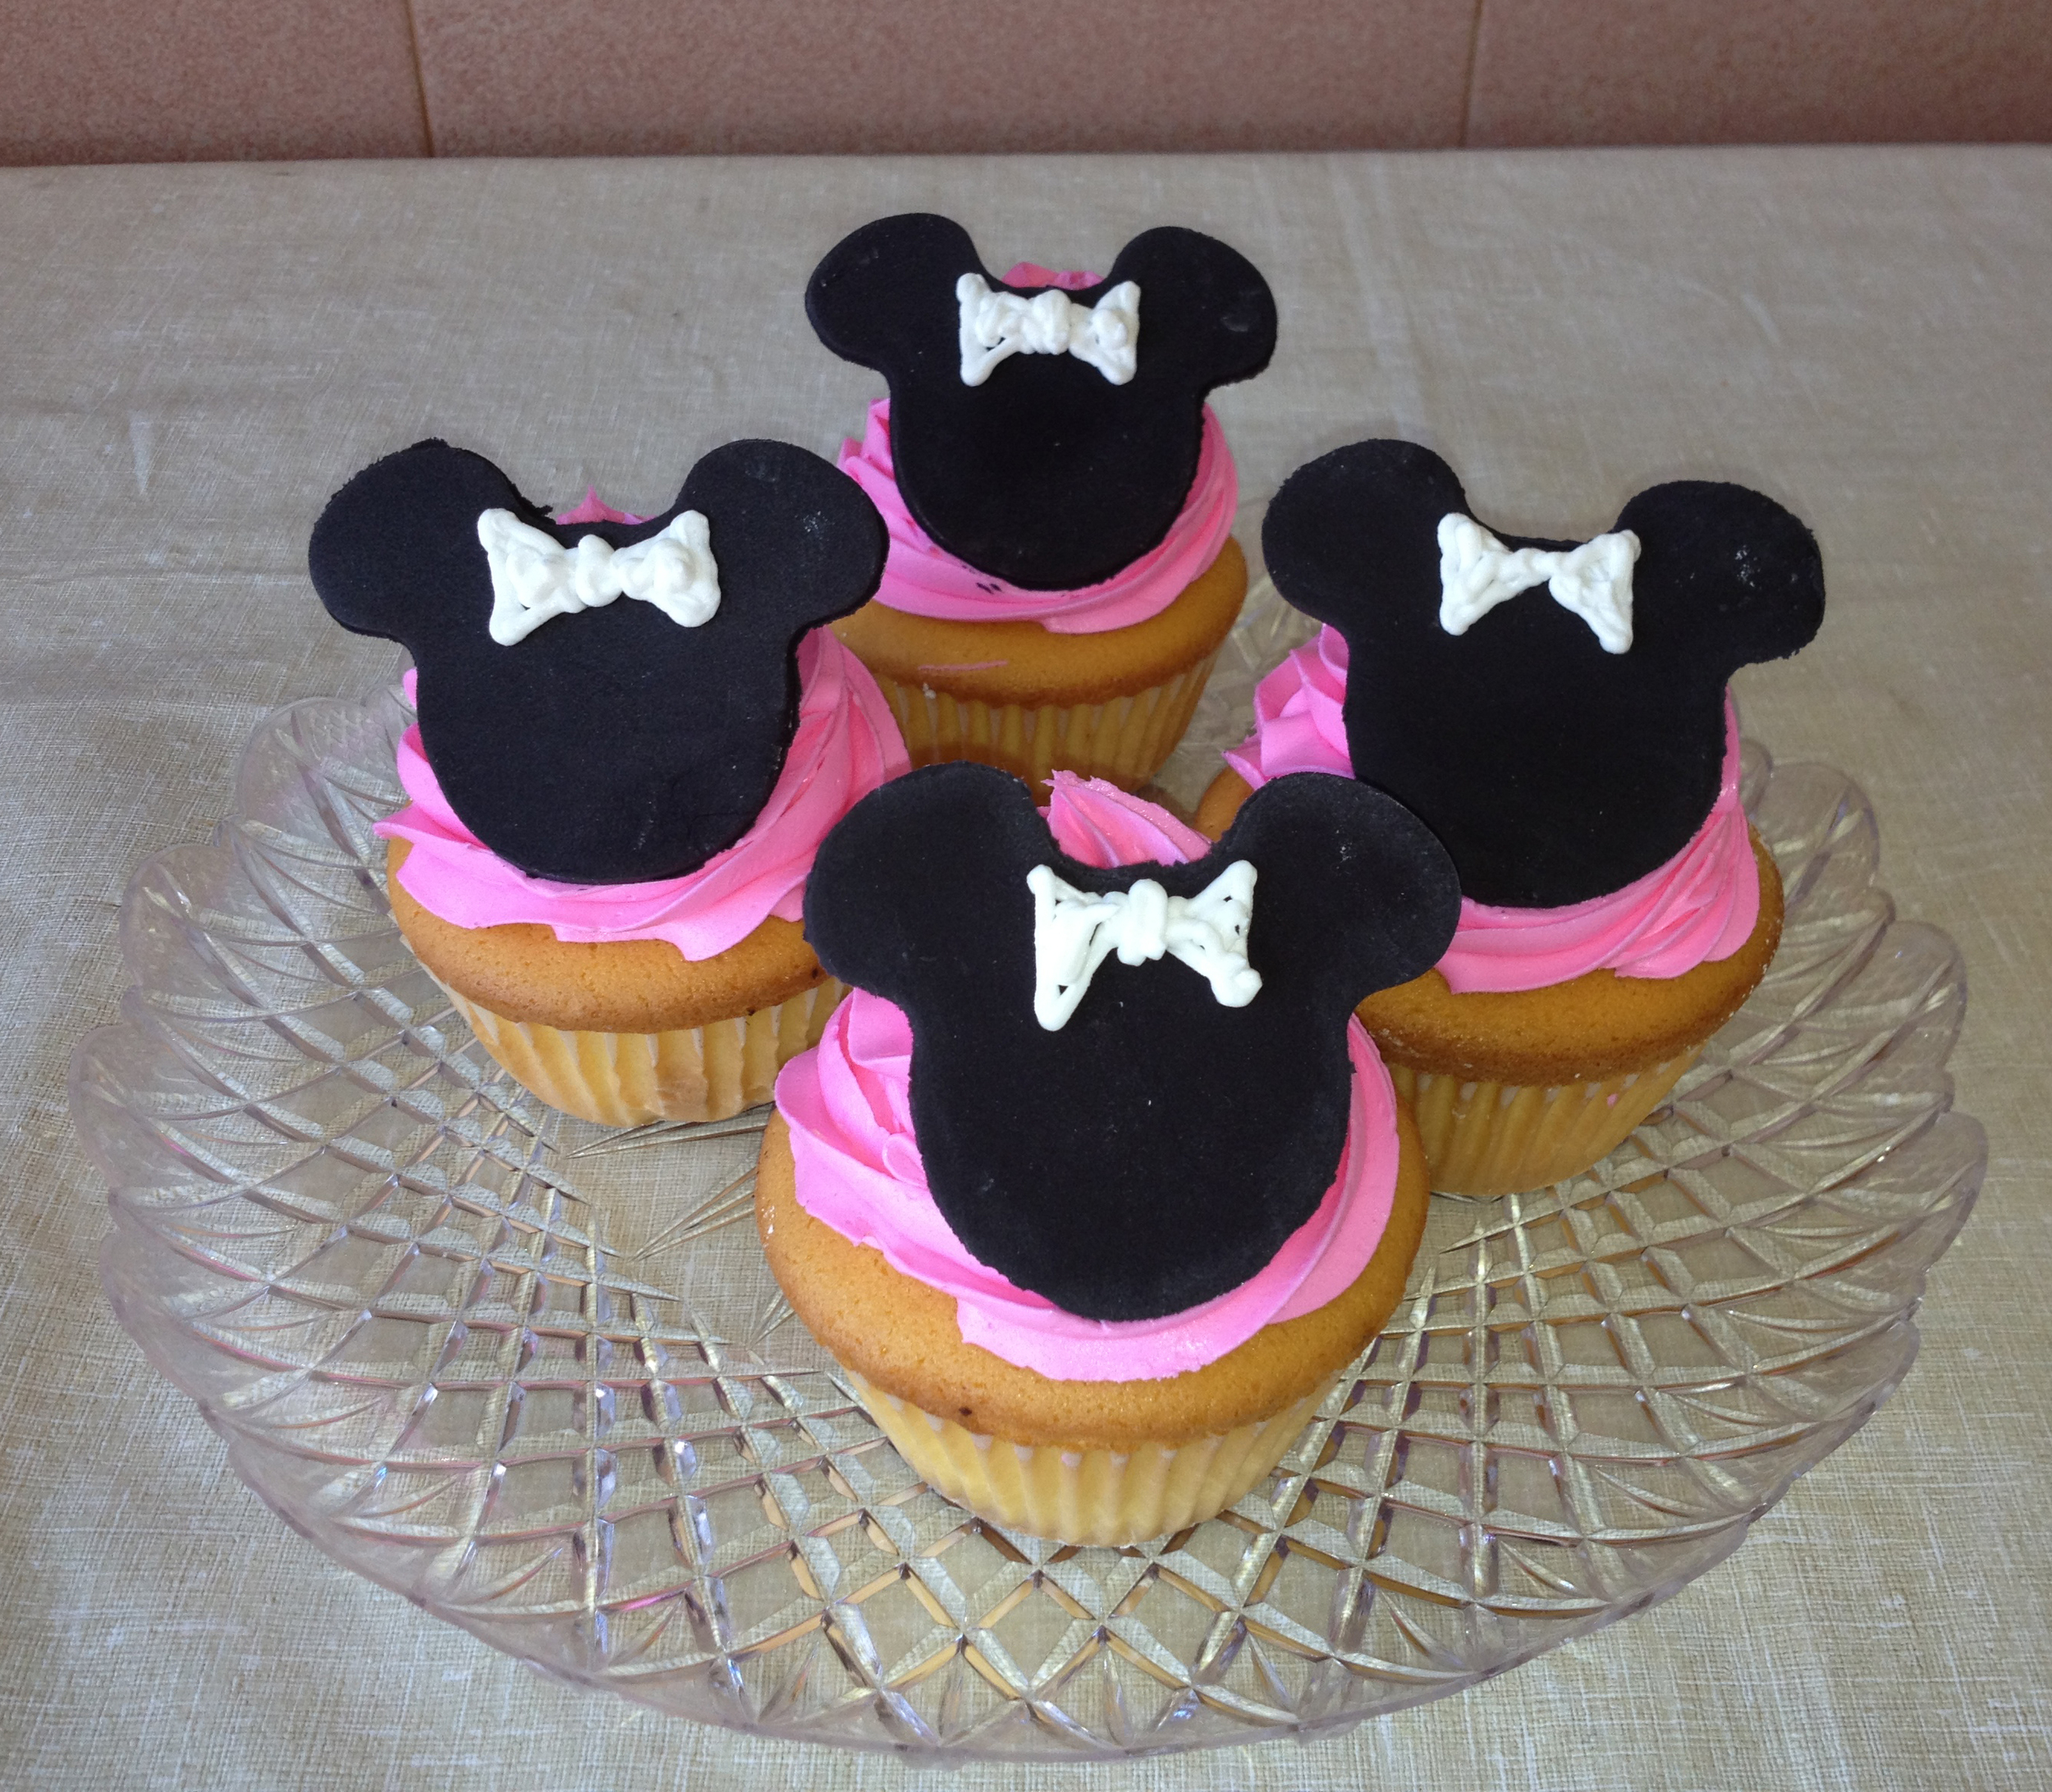 Minnie Mouse Cupcakes.JPG